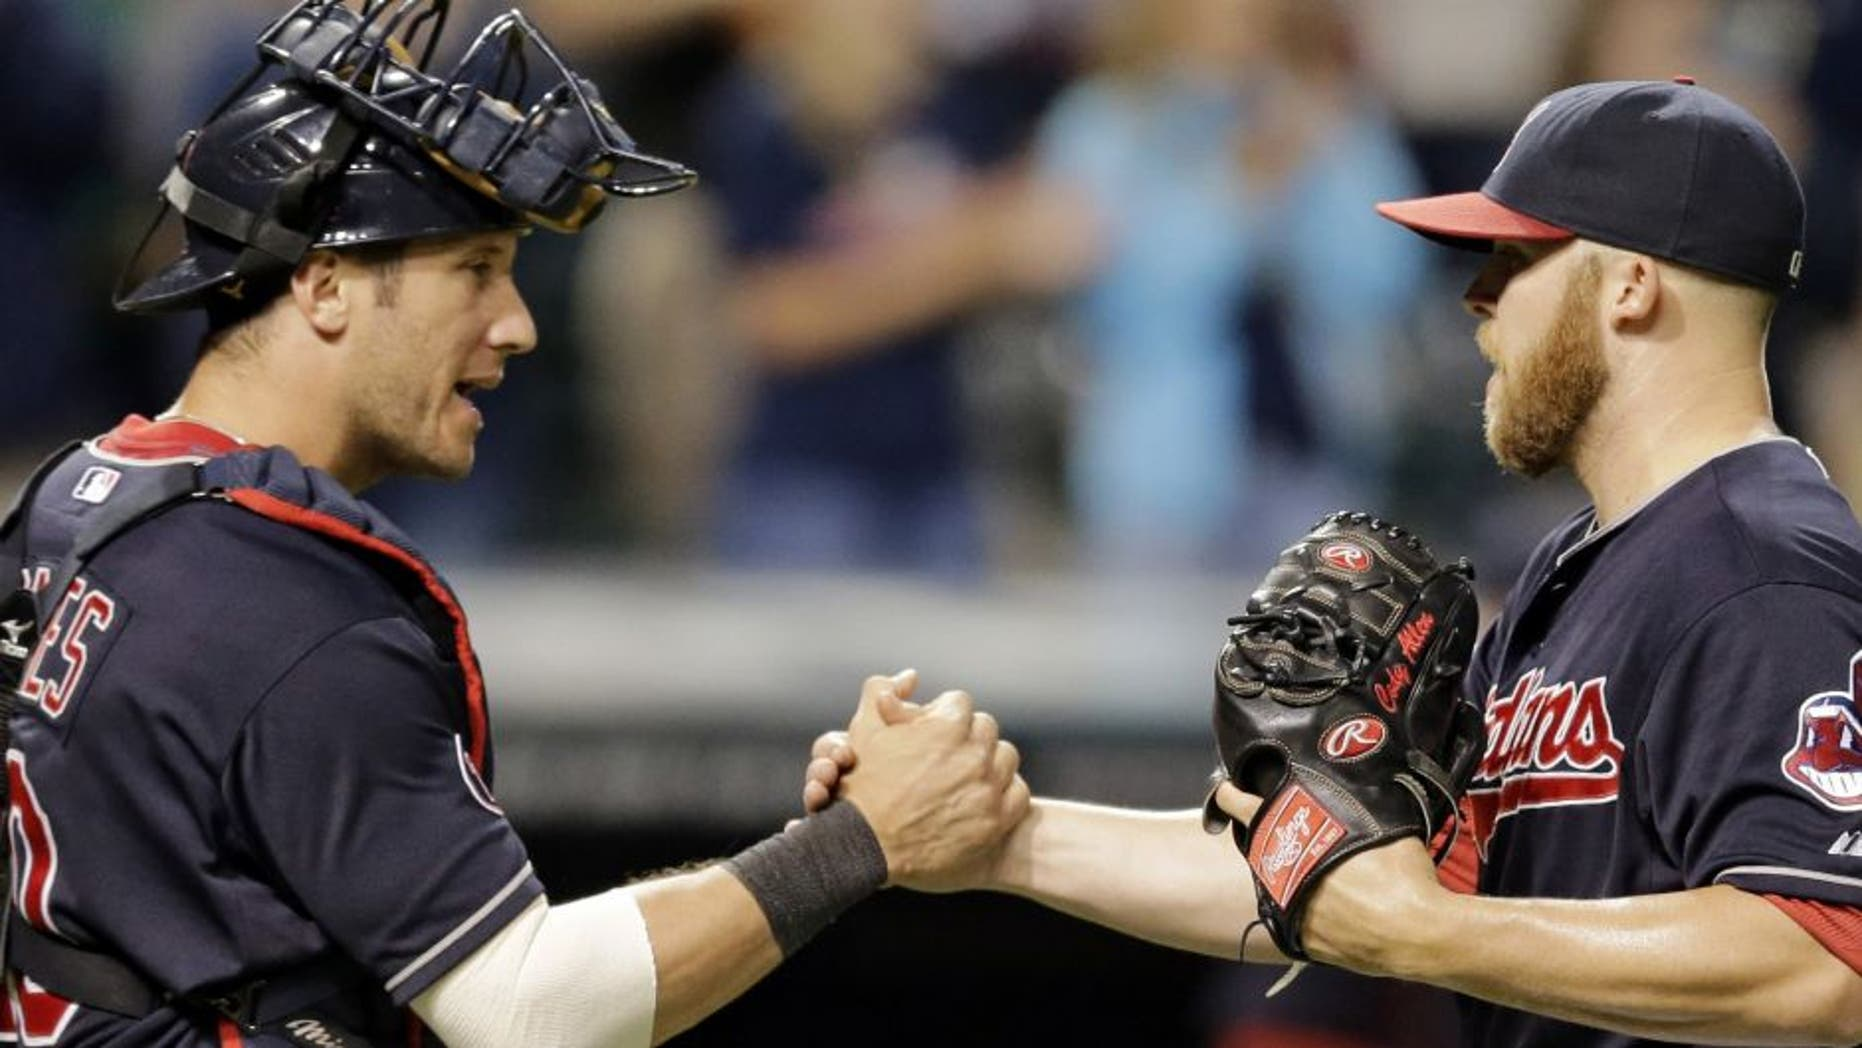 Cleveland Indians catcher Yan Gomes, left, congratulates relief pitcher Cody Allen after they defeated the Detroit Tigers 7-5 on Thursday night